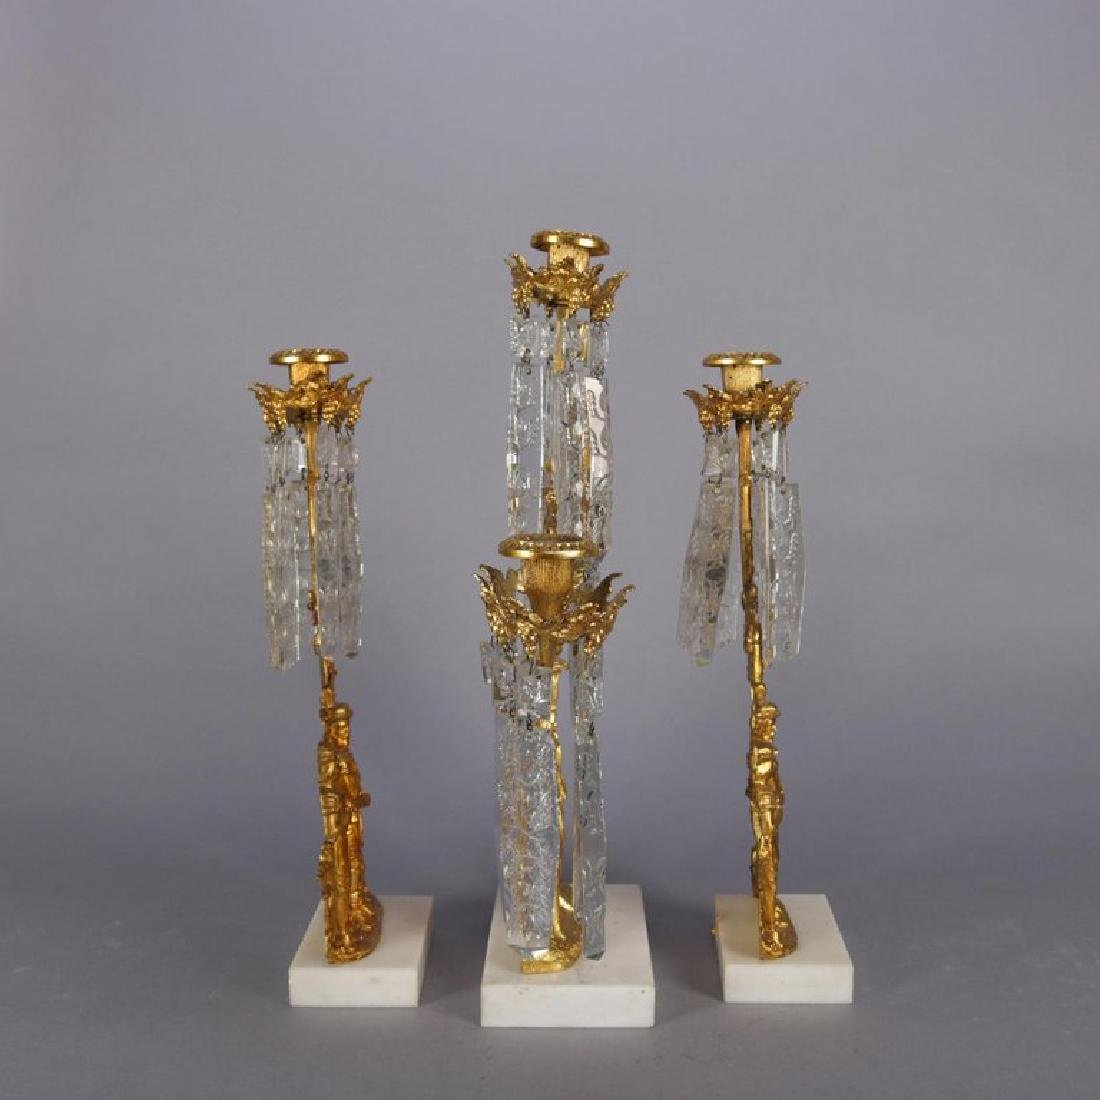 Antique French Gilt Metal, Marble and Crystal Girandole - 8